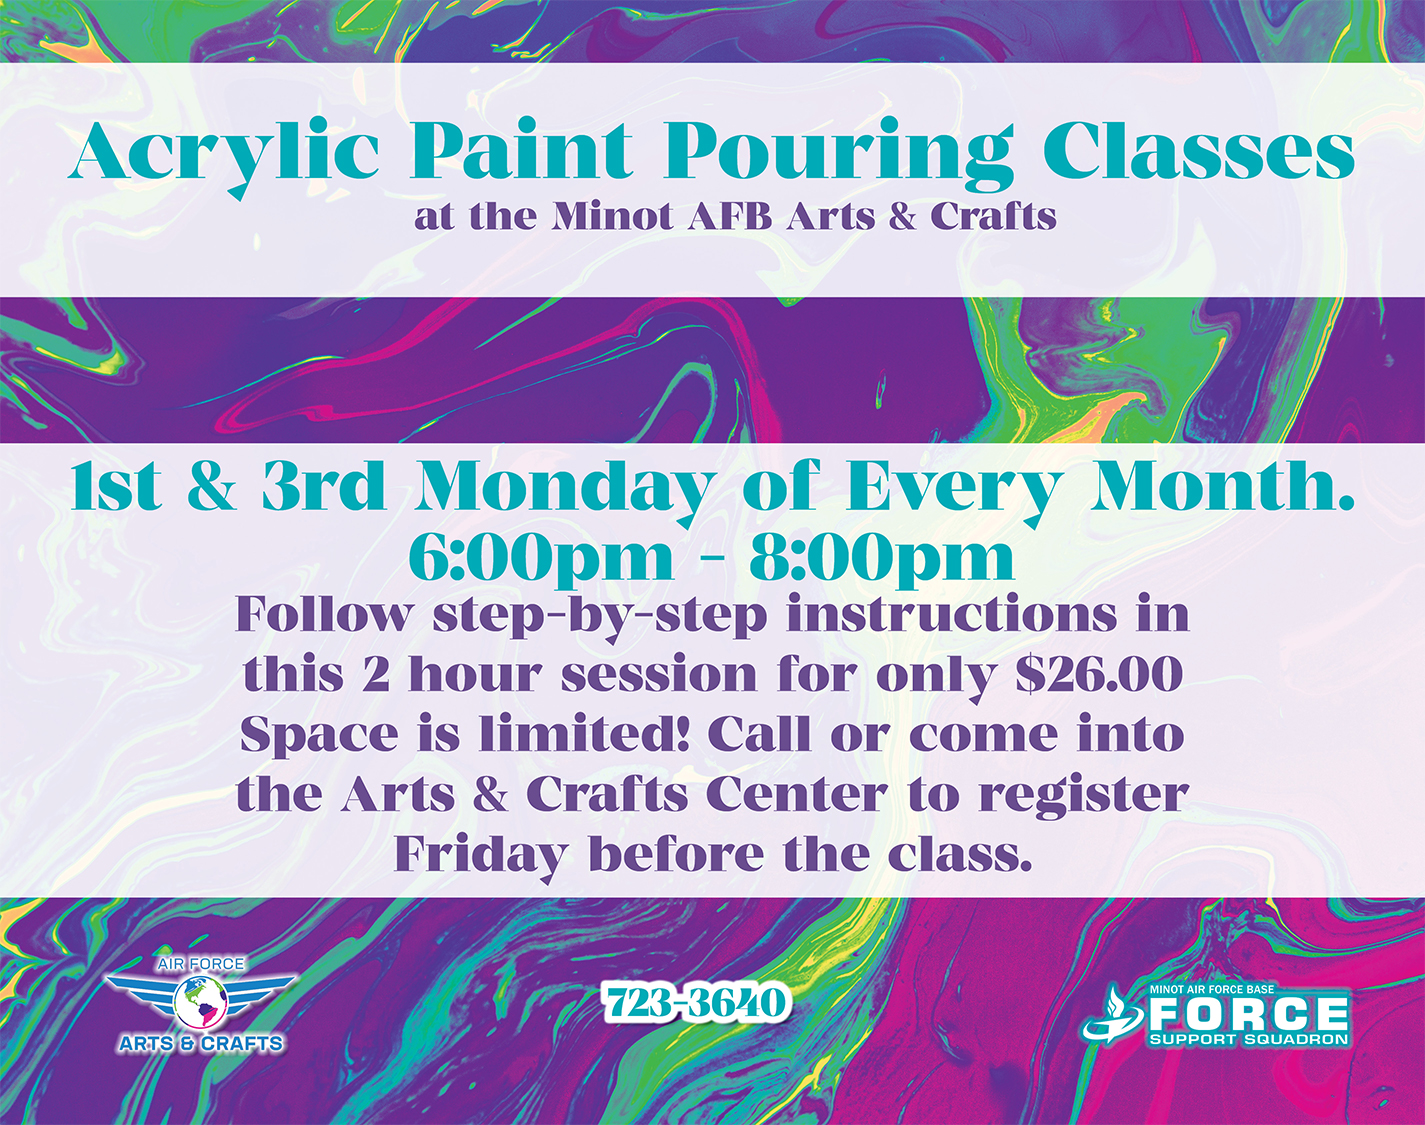 Registration Ends: Acrylic Paint Pouring